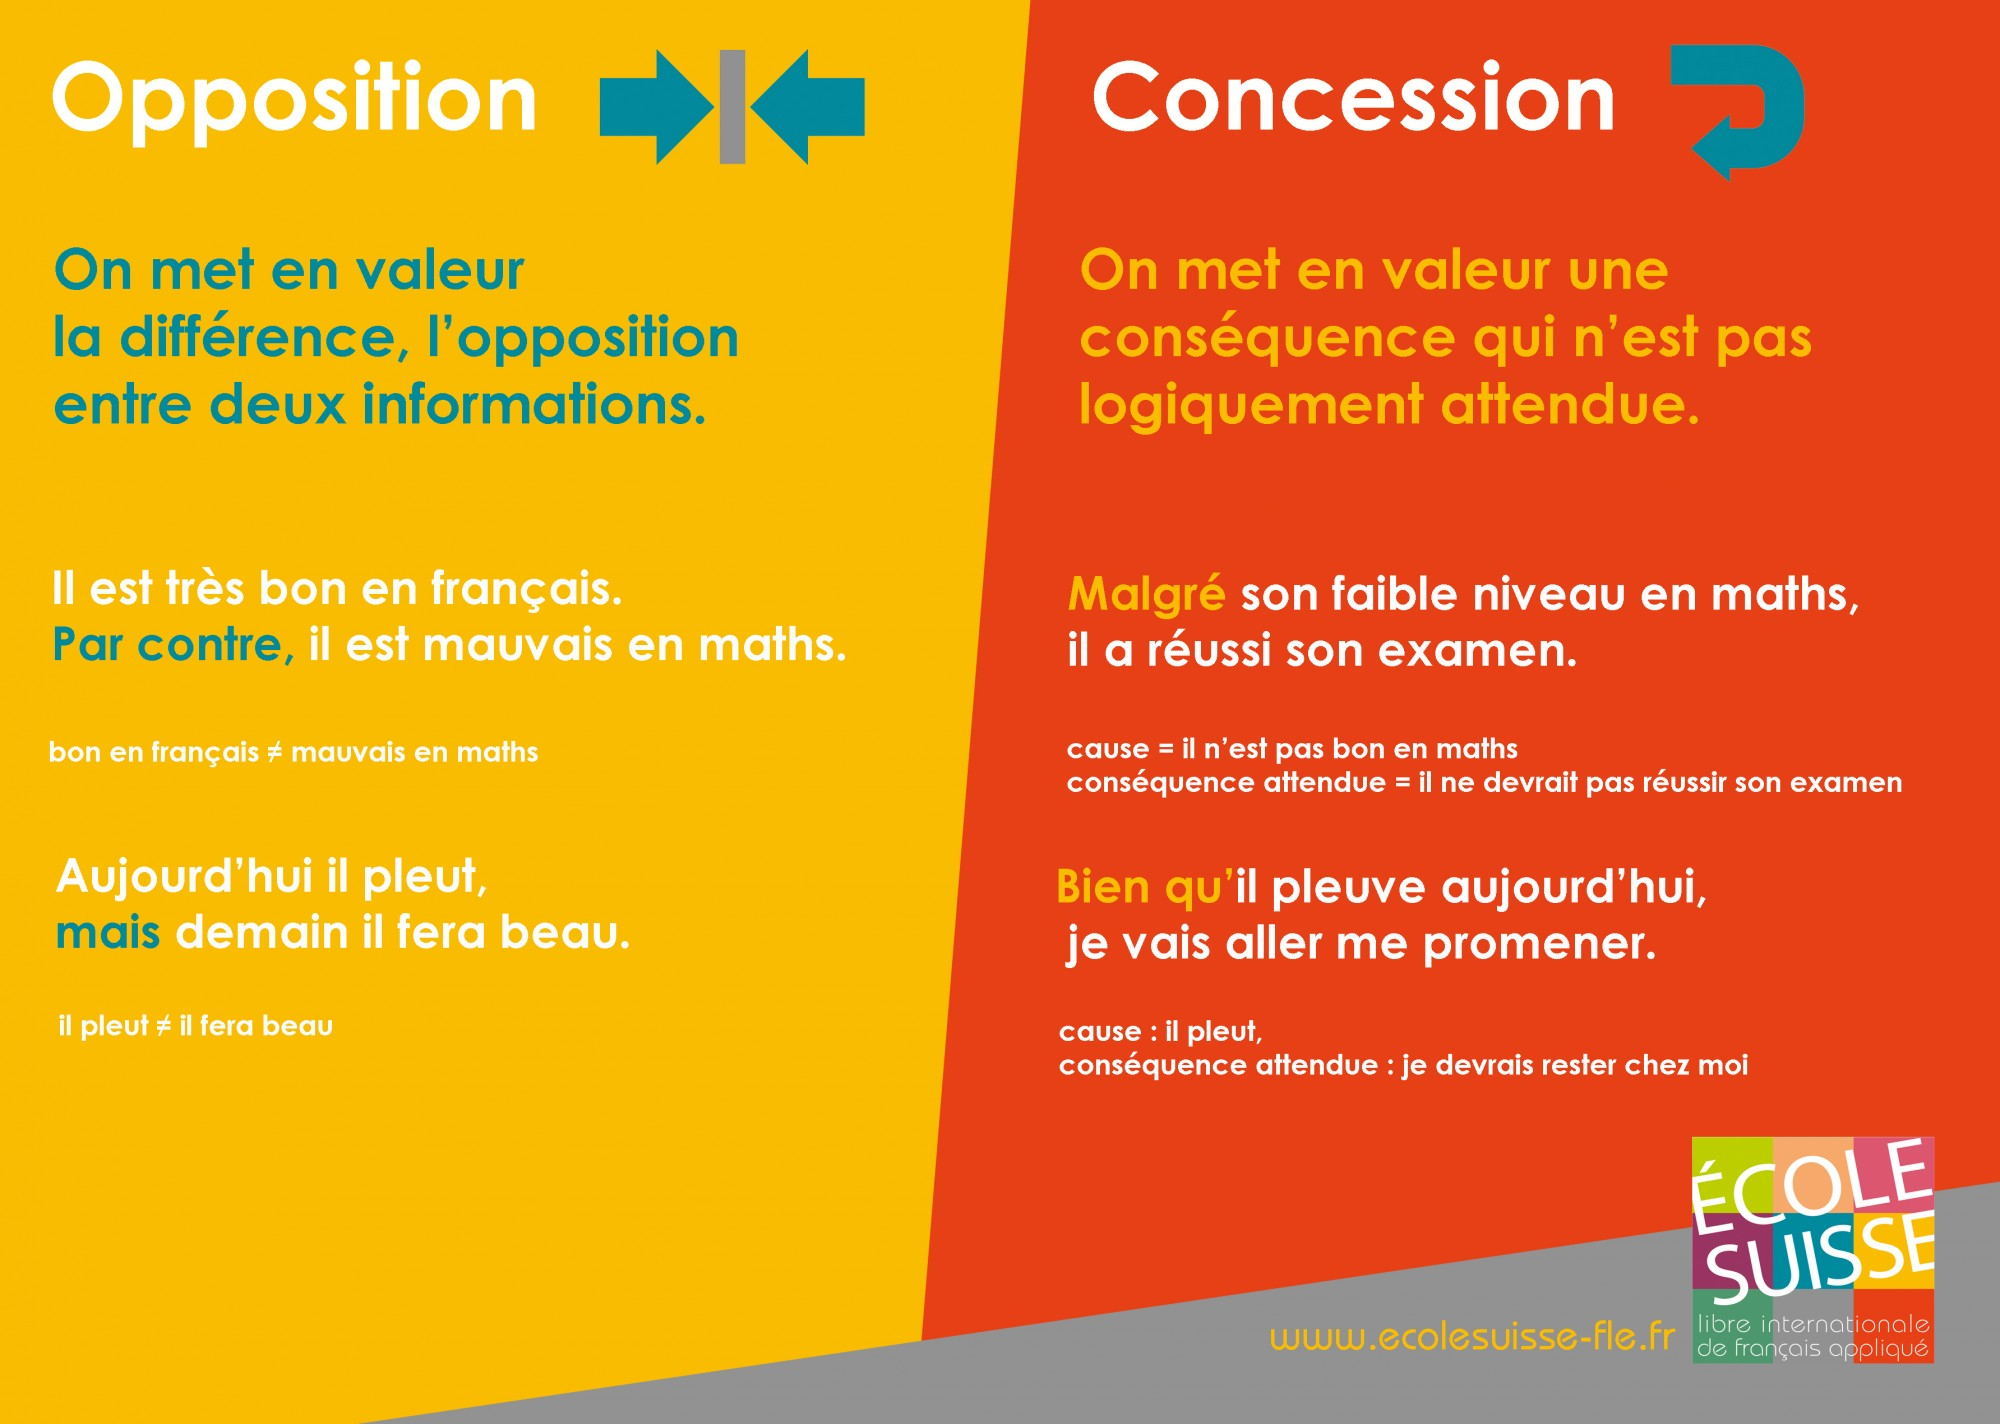 Ecole Suisse Internationale-Opposition et concession (2)